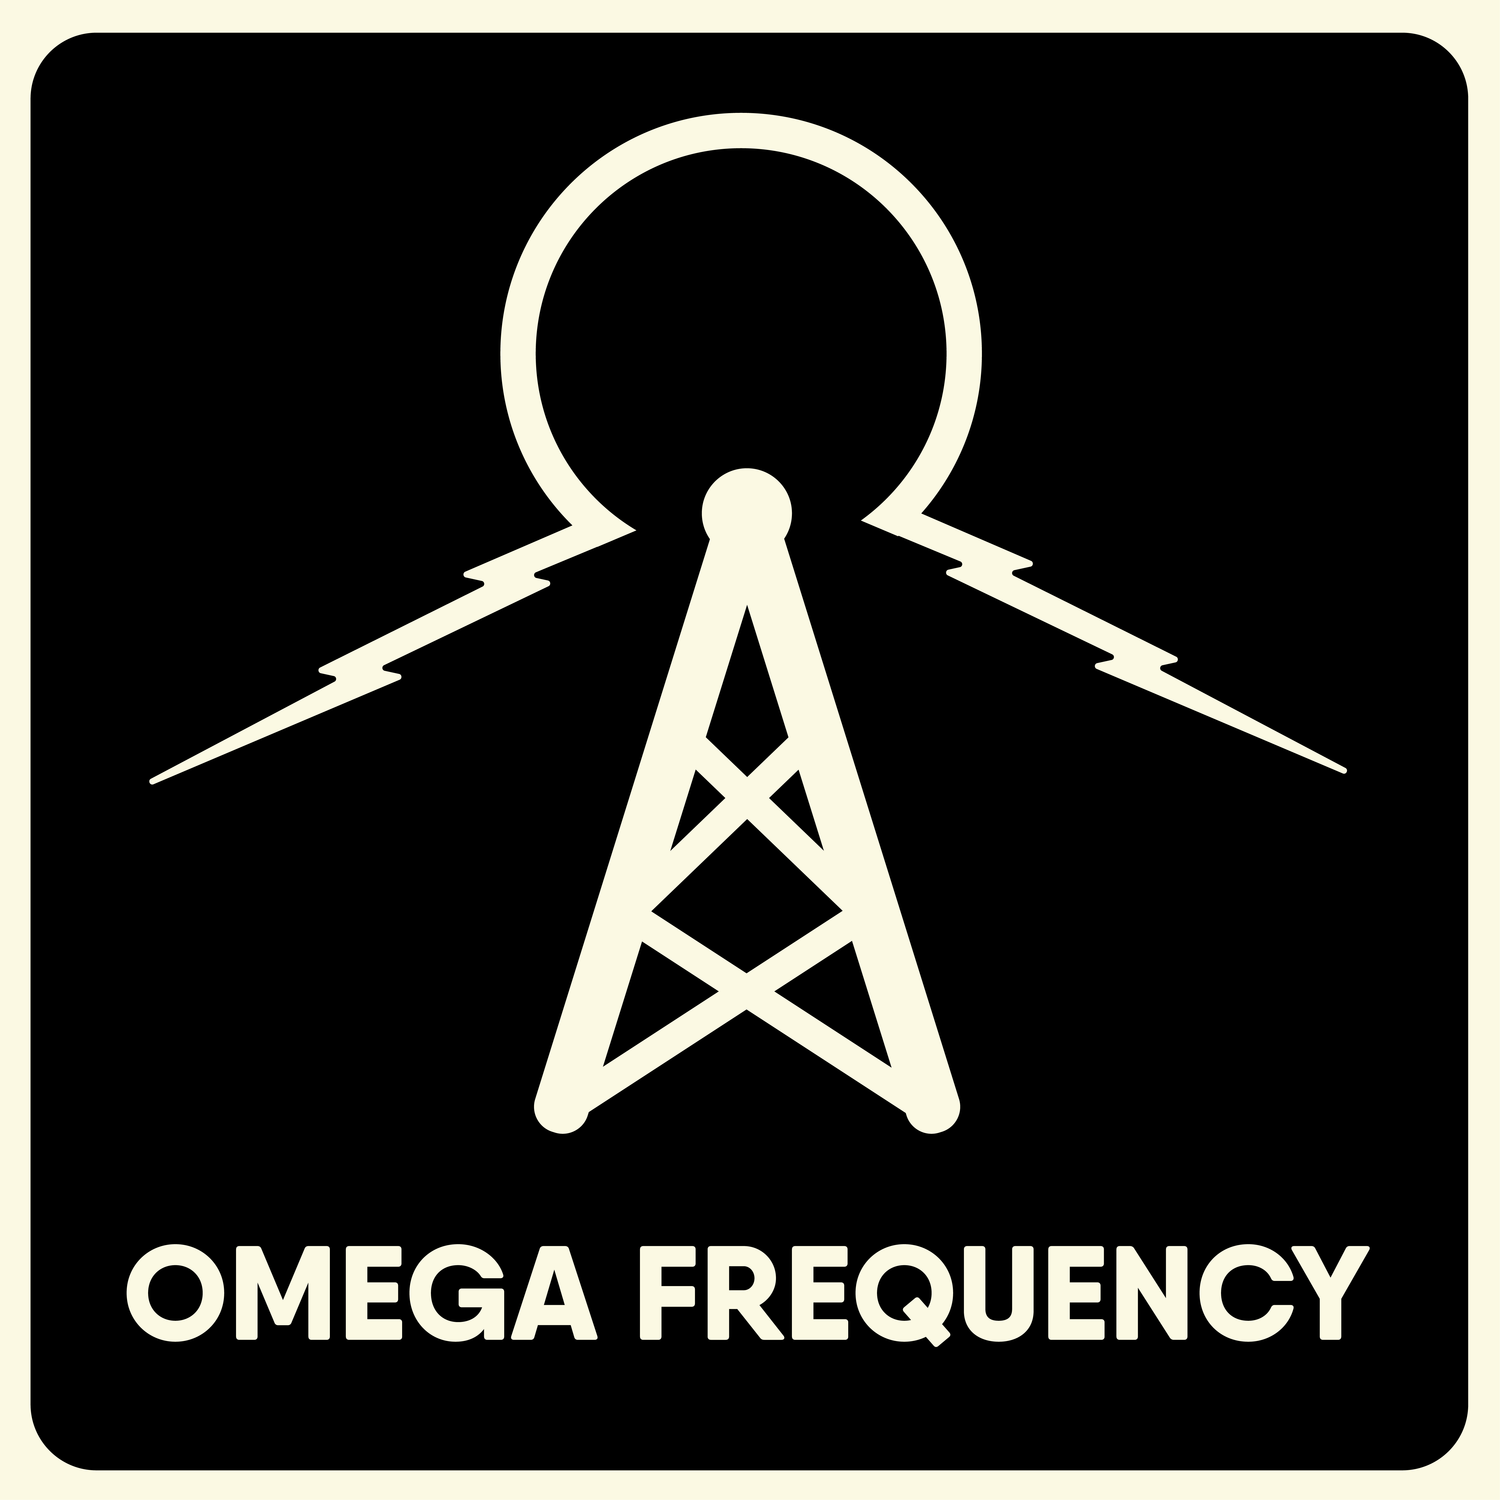 Omega Frequency